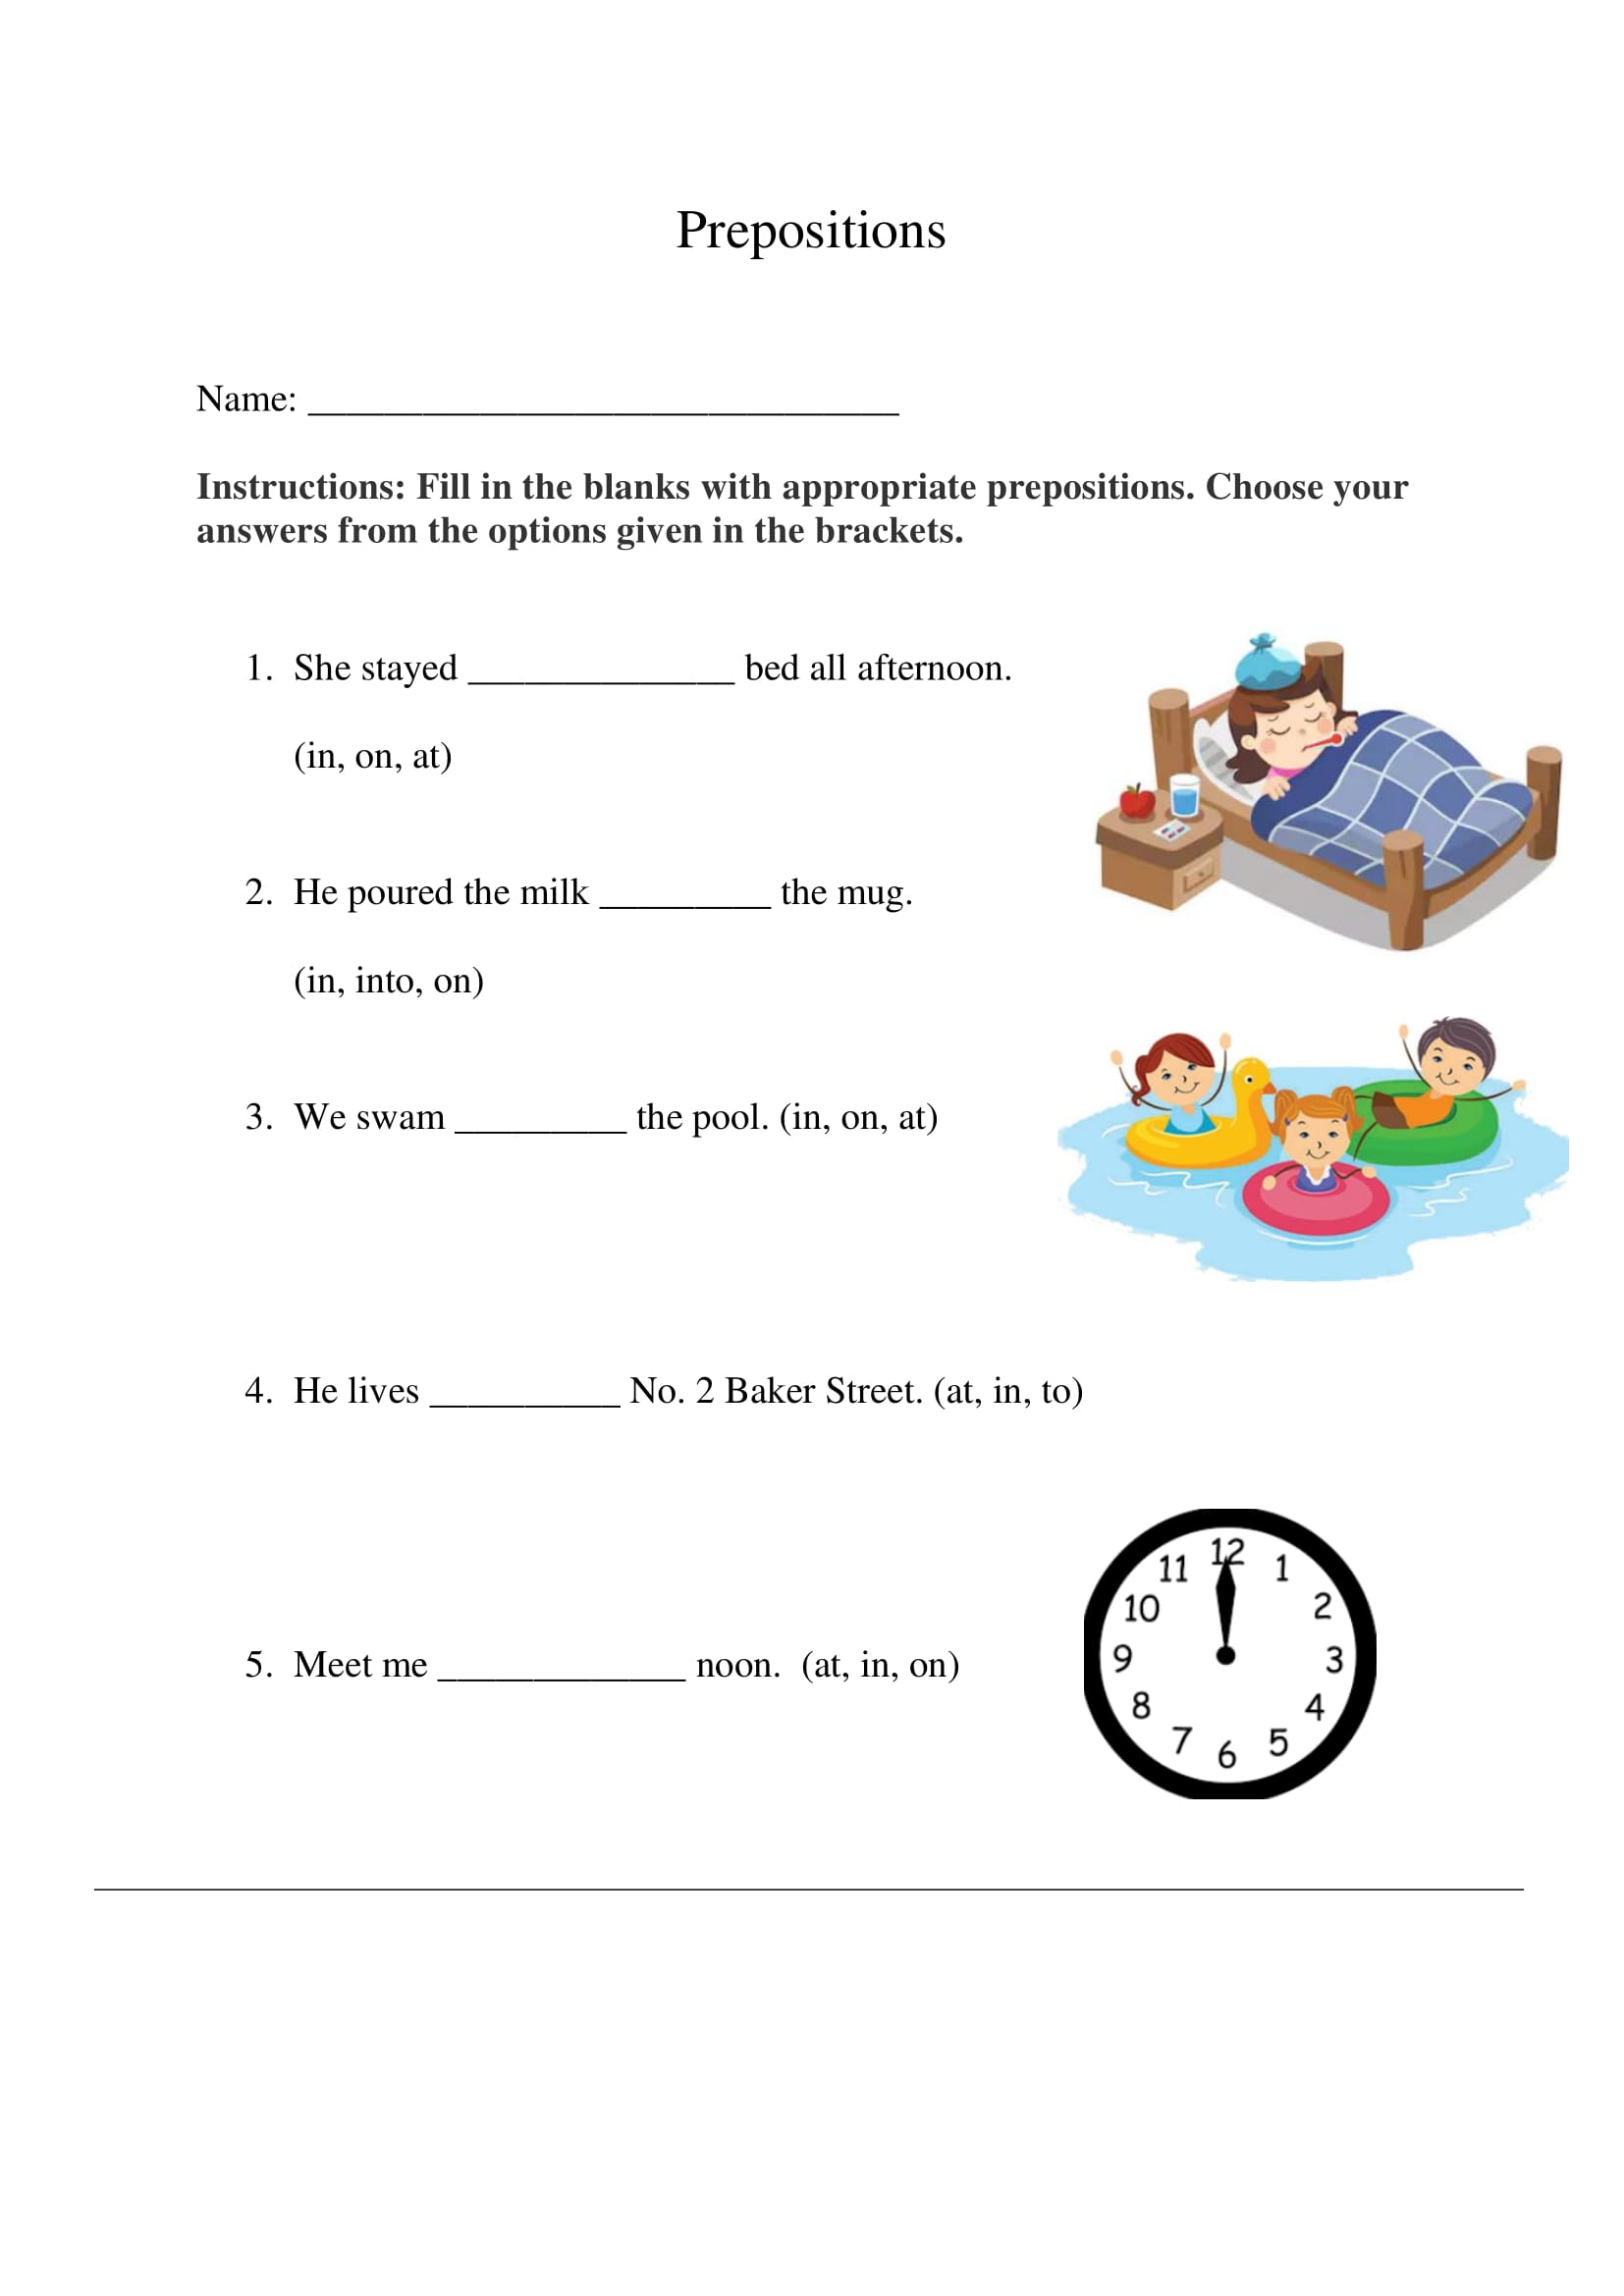 Prepositions Exercise 2